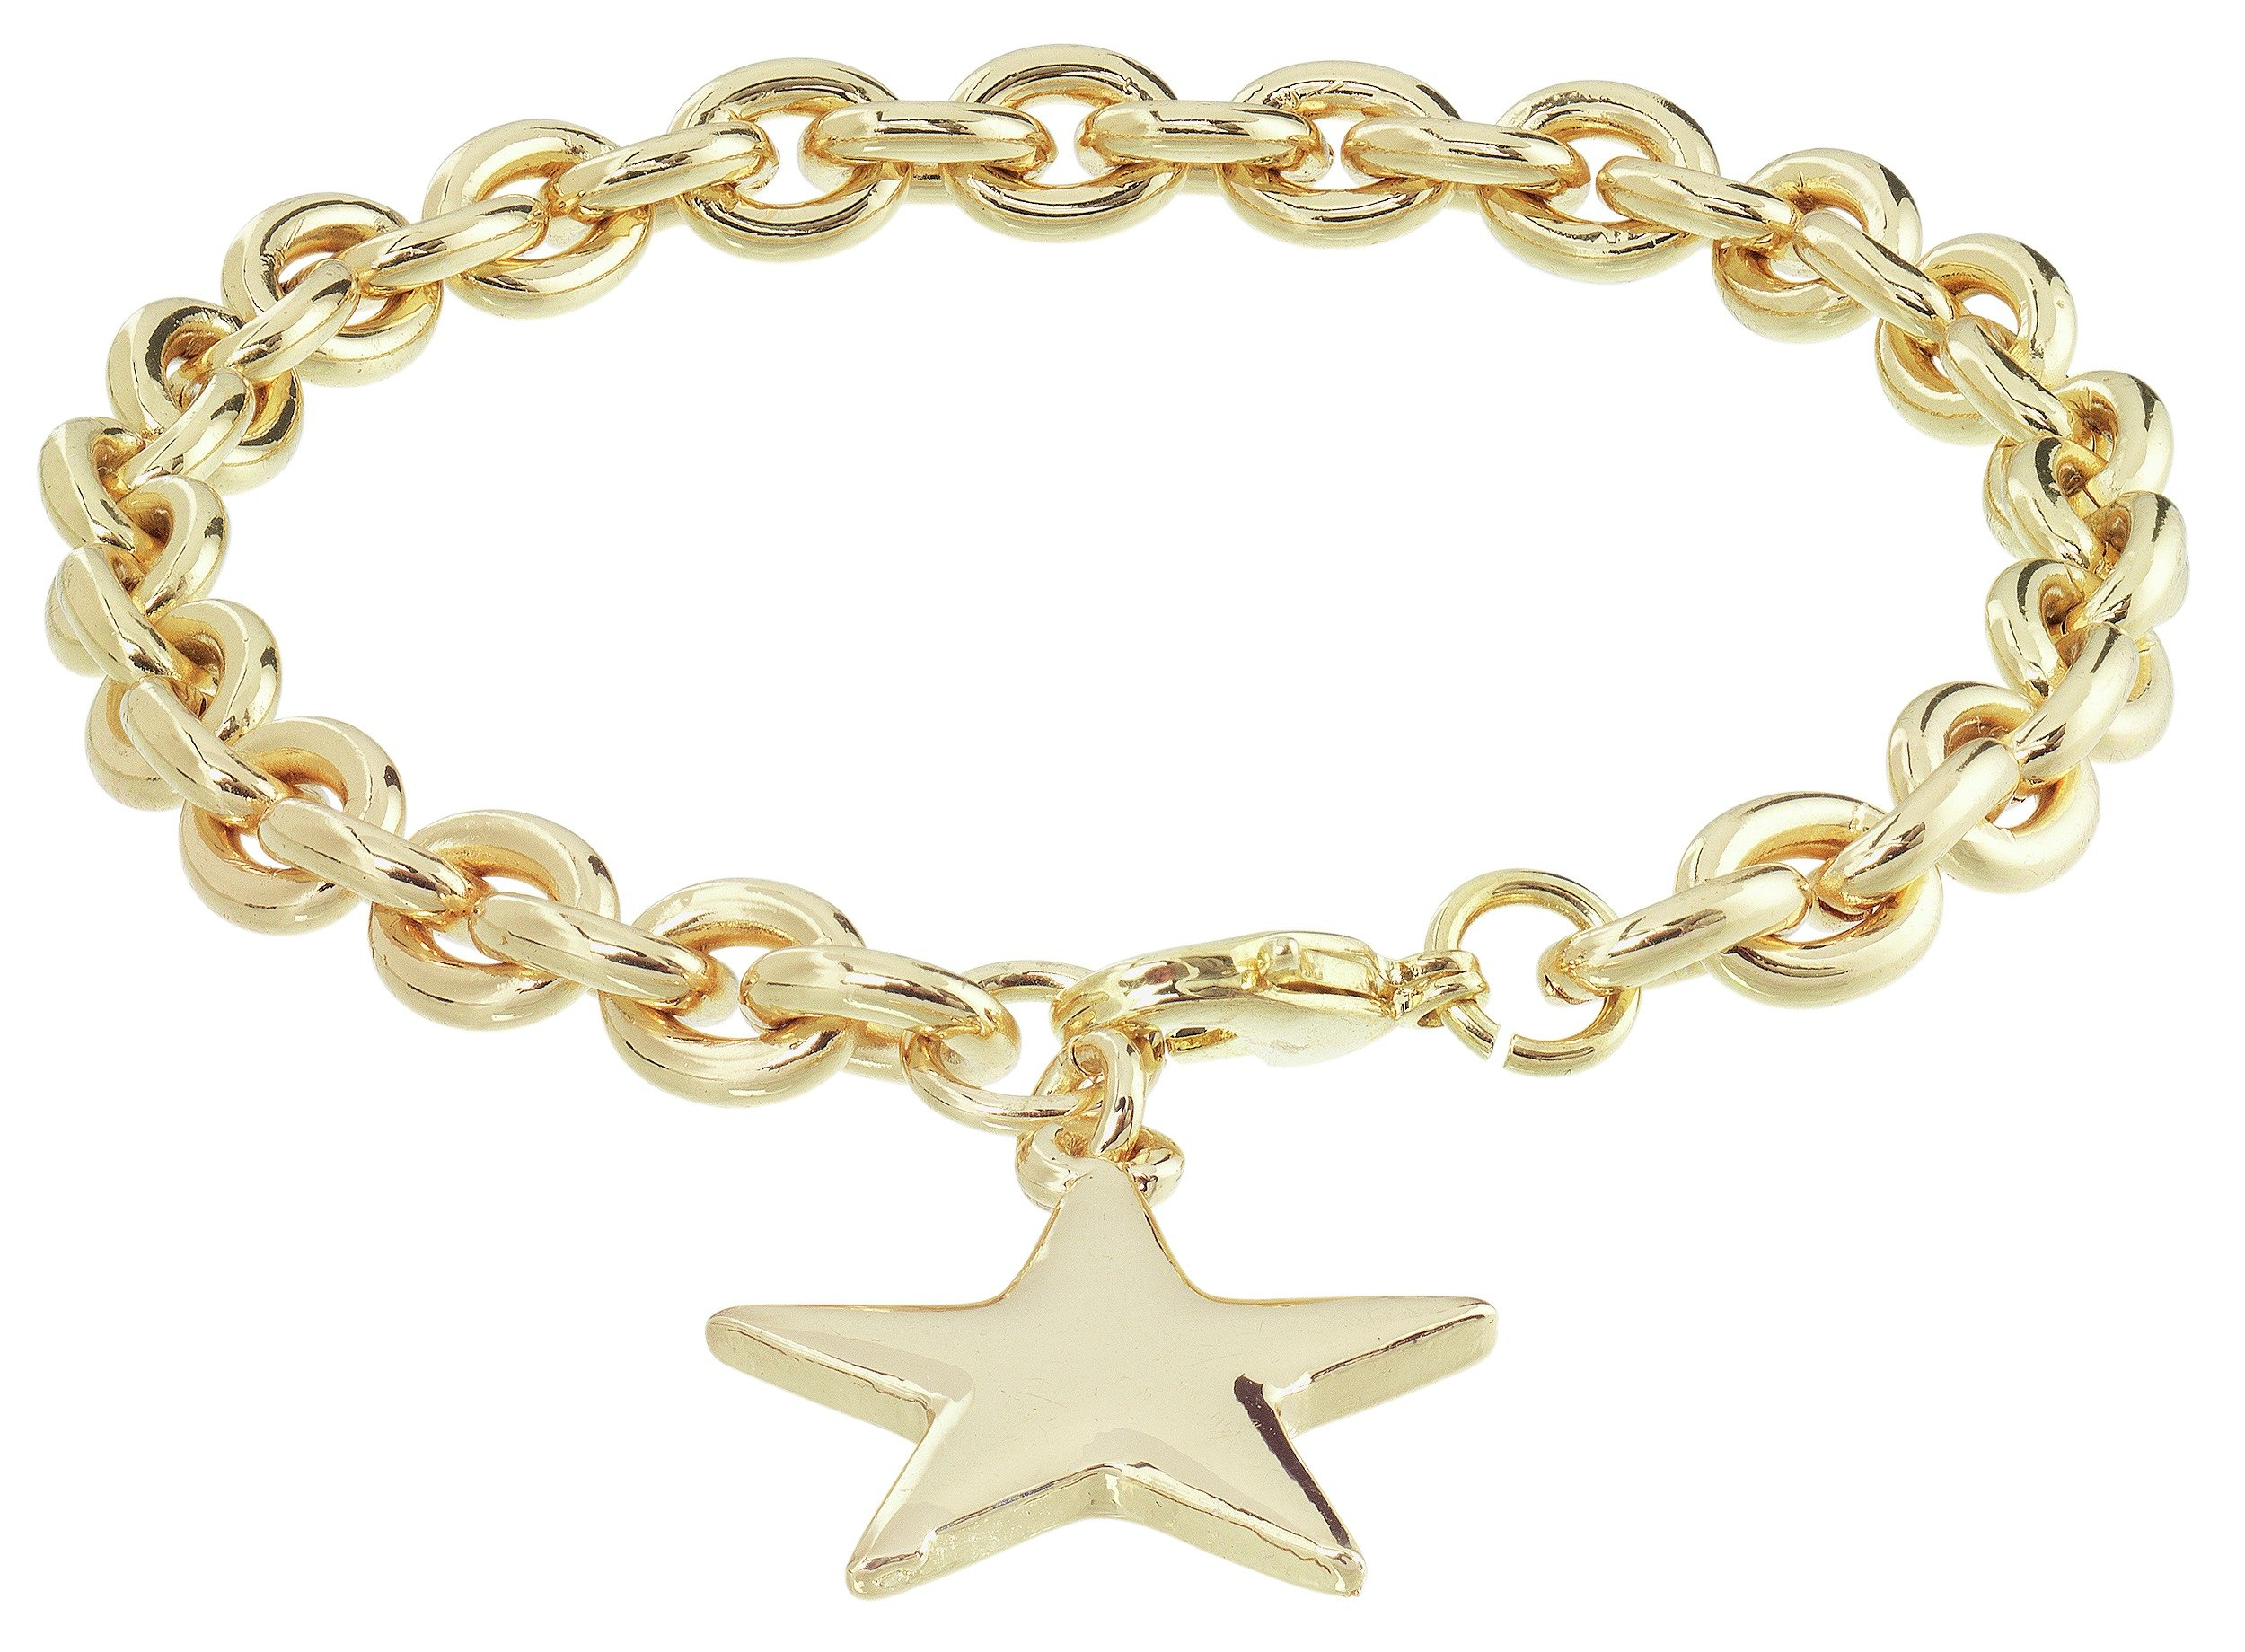 Image of Amelia Grace Gold Plated Star Charm Chain Bracelet